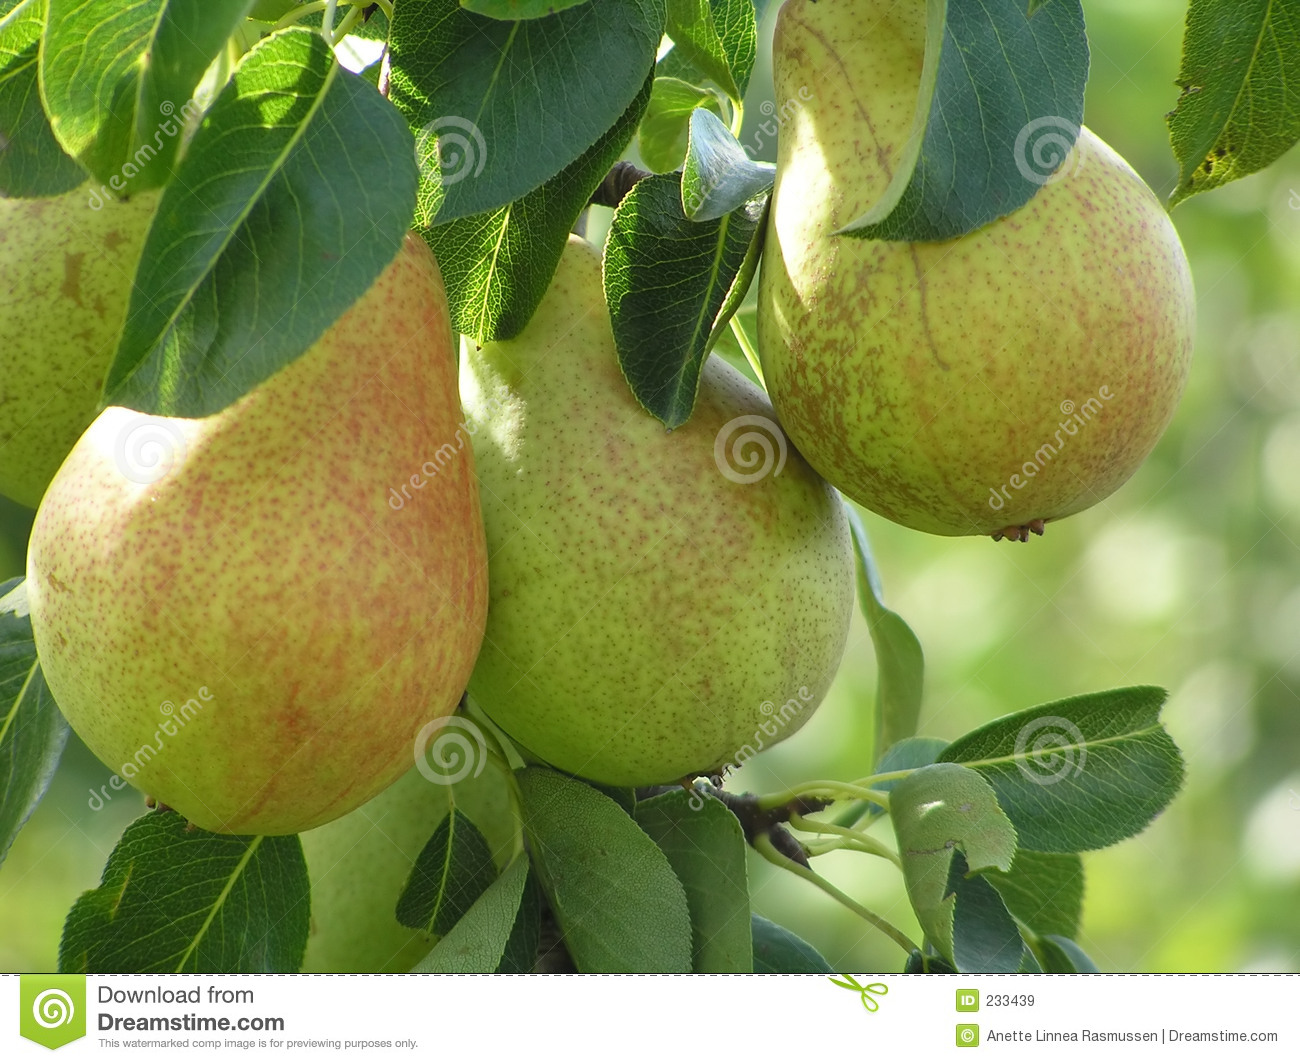 Close-up of pears